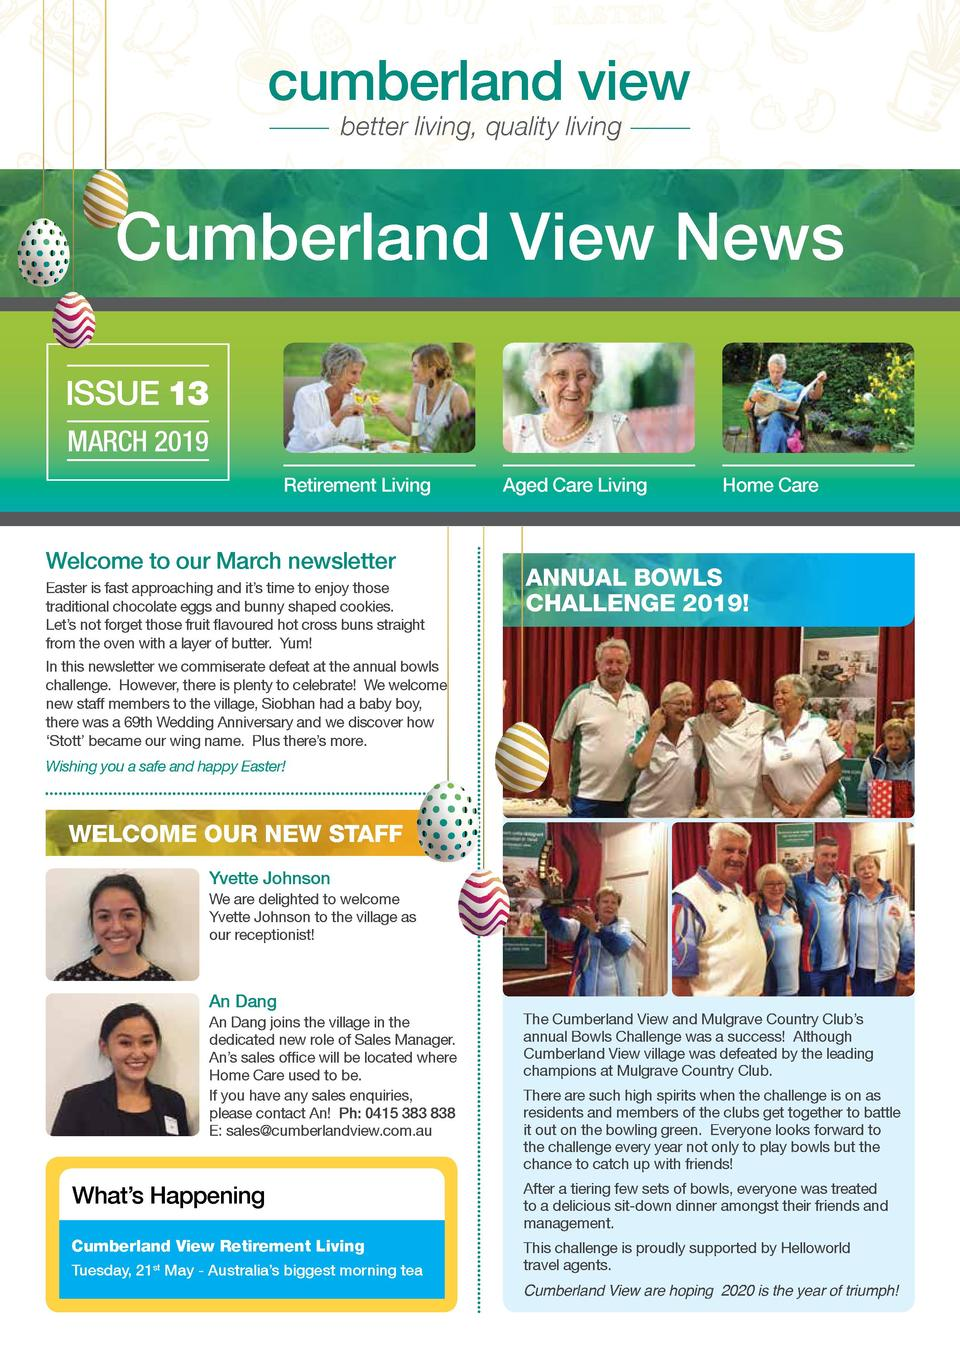 cumberland view better living, quality living  Cumberland View News ISSUE 13 MARCH 2019 Retirement Living  Welcome to our ...